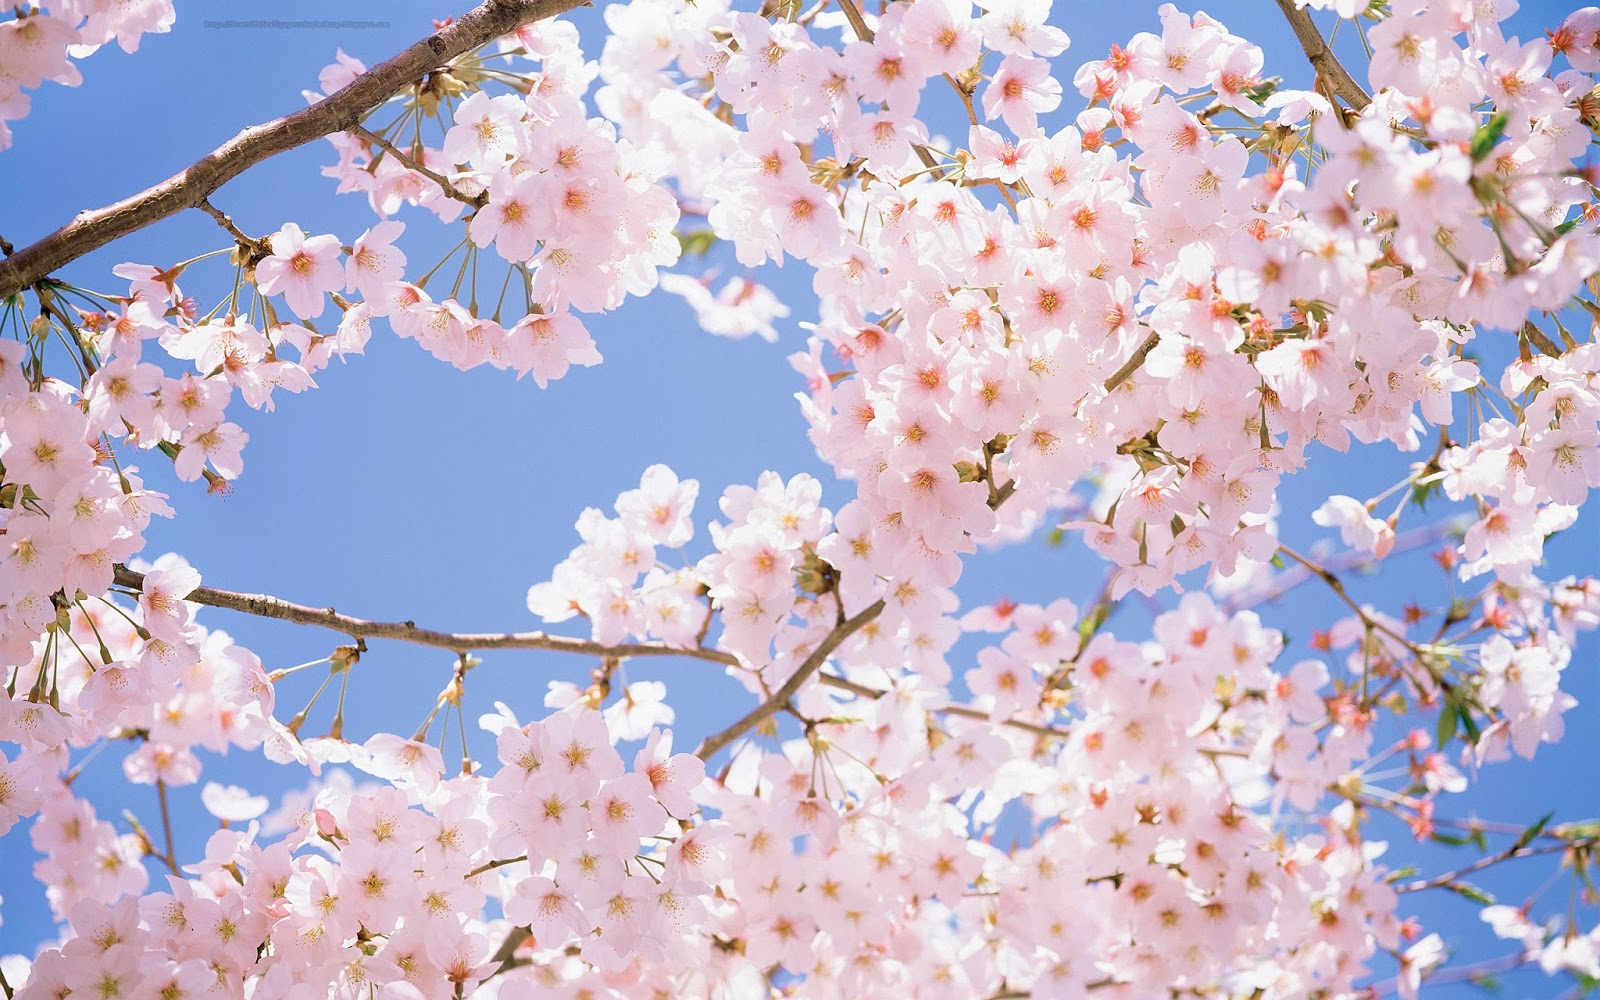 Beautiful Wallpapers For Desktop: Cherry Blossom wallpapers hd